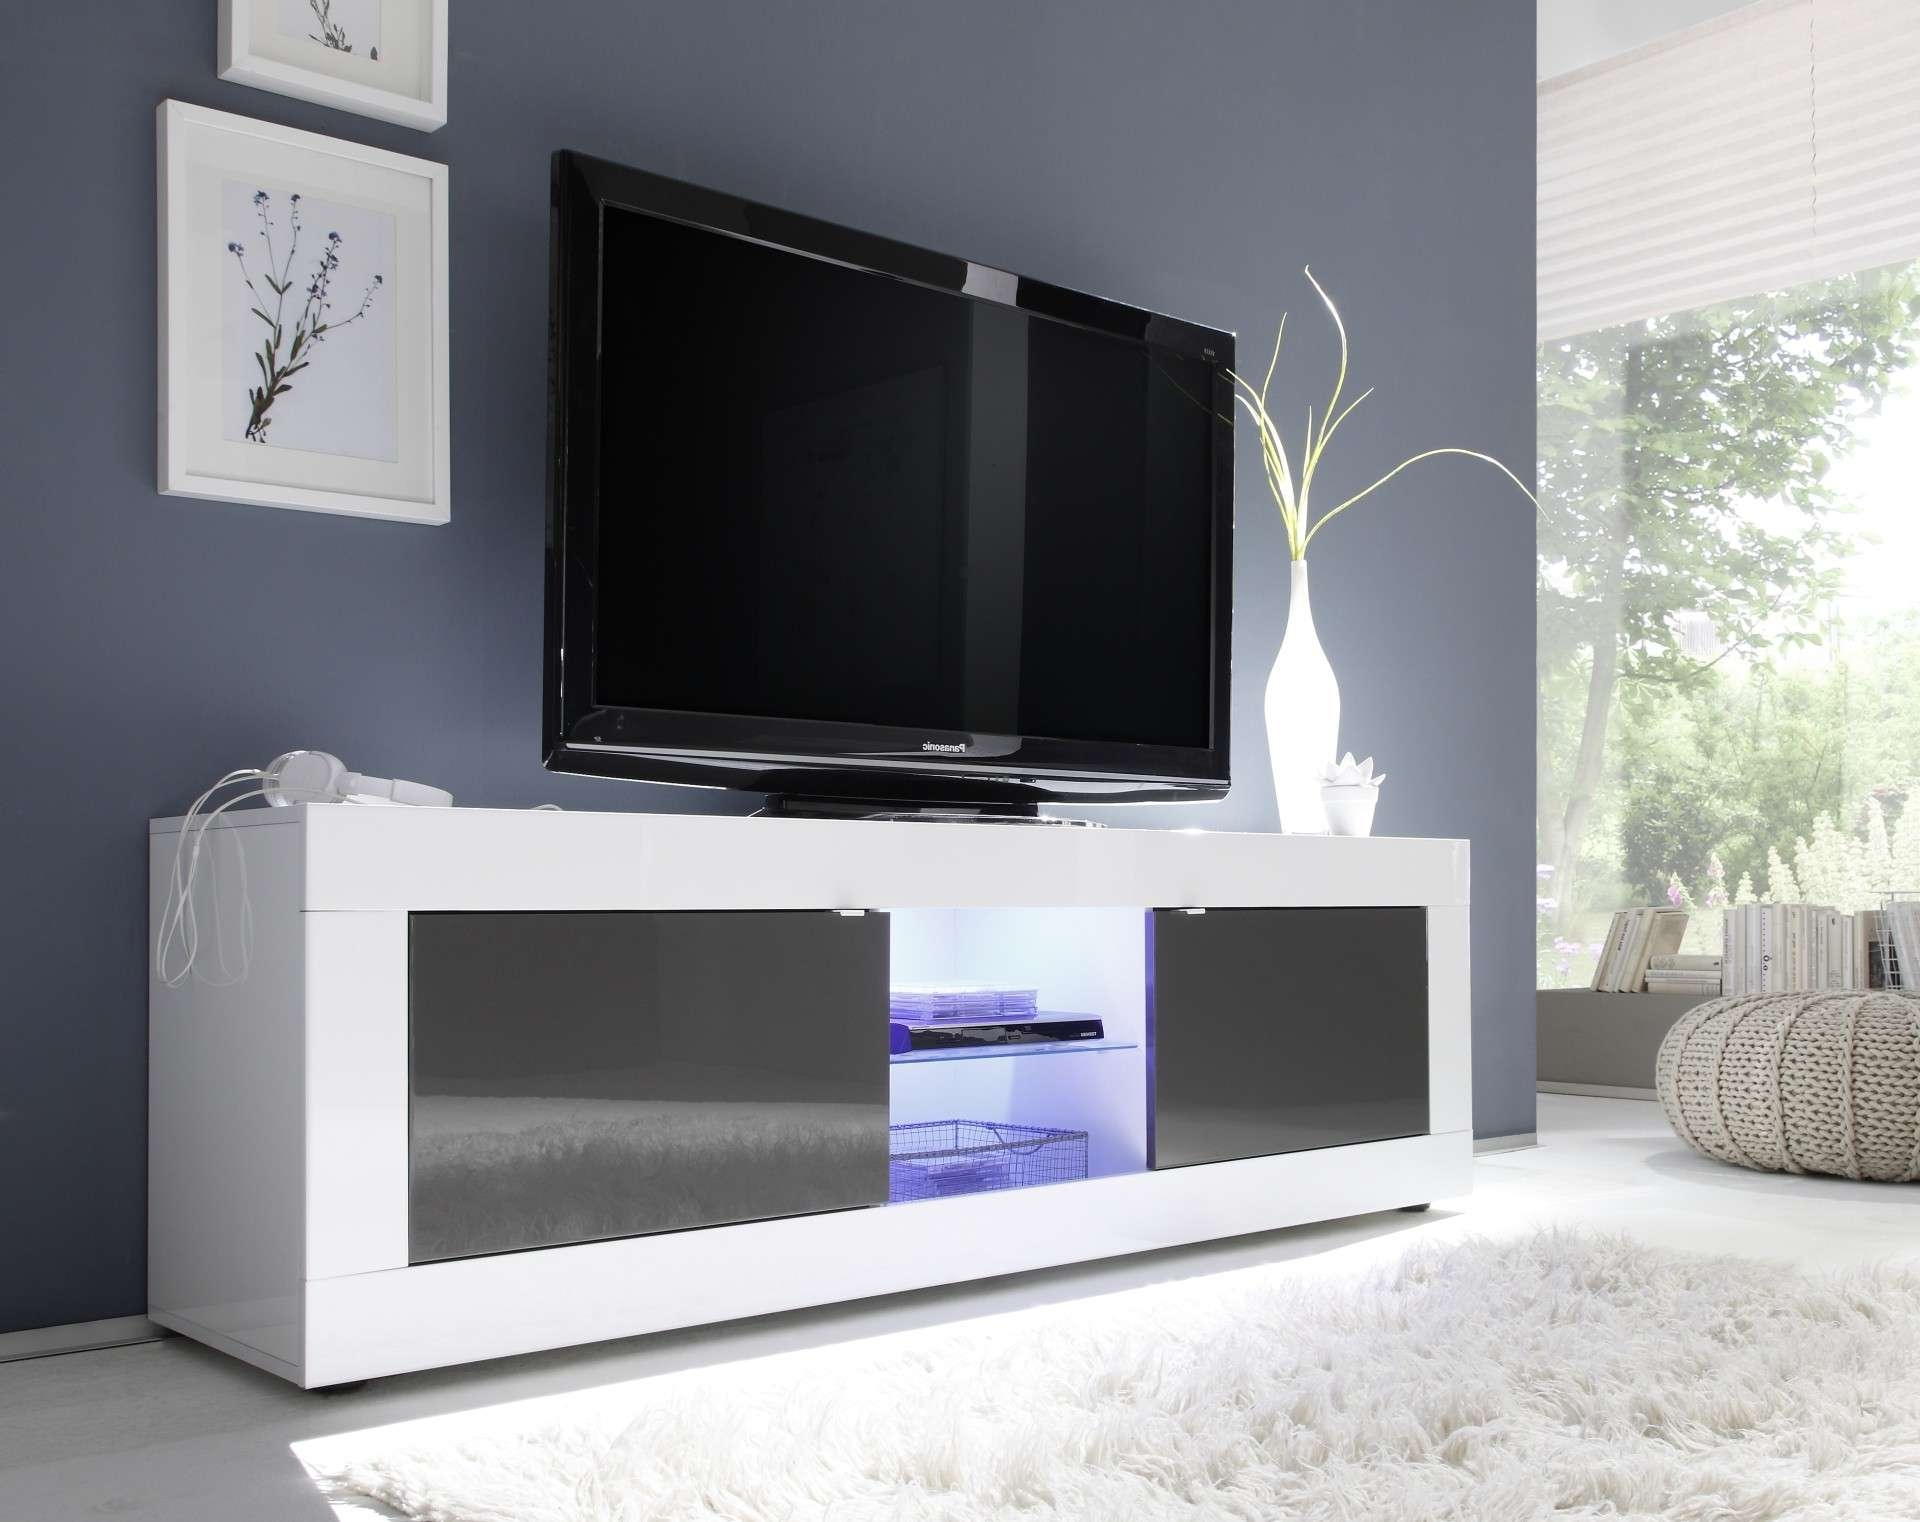 60 Inch Tv Cabinet White – Imanisr With Modern Tv Stands For 60 Inch Tvs (View 2 of 15)